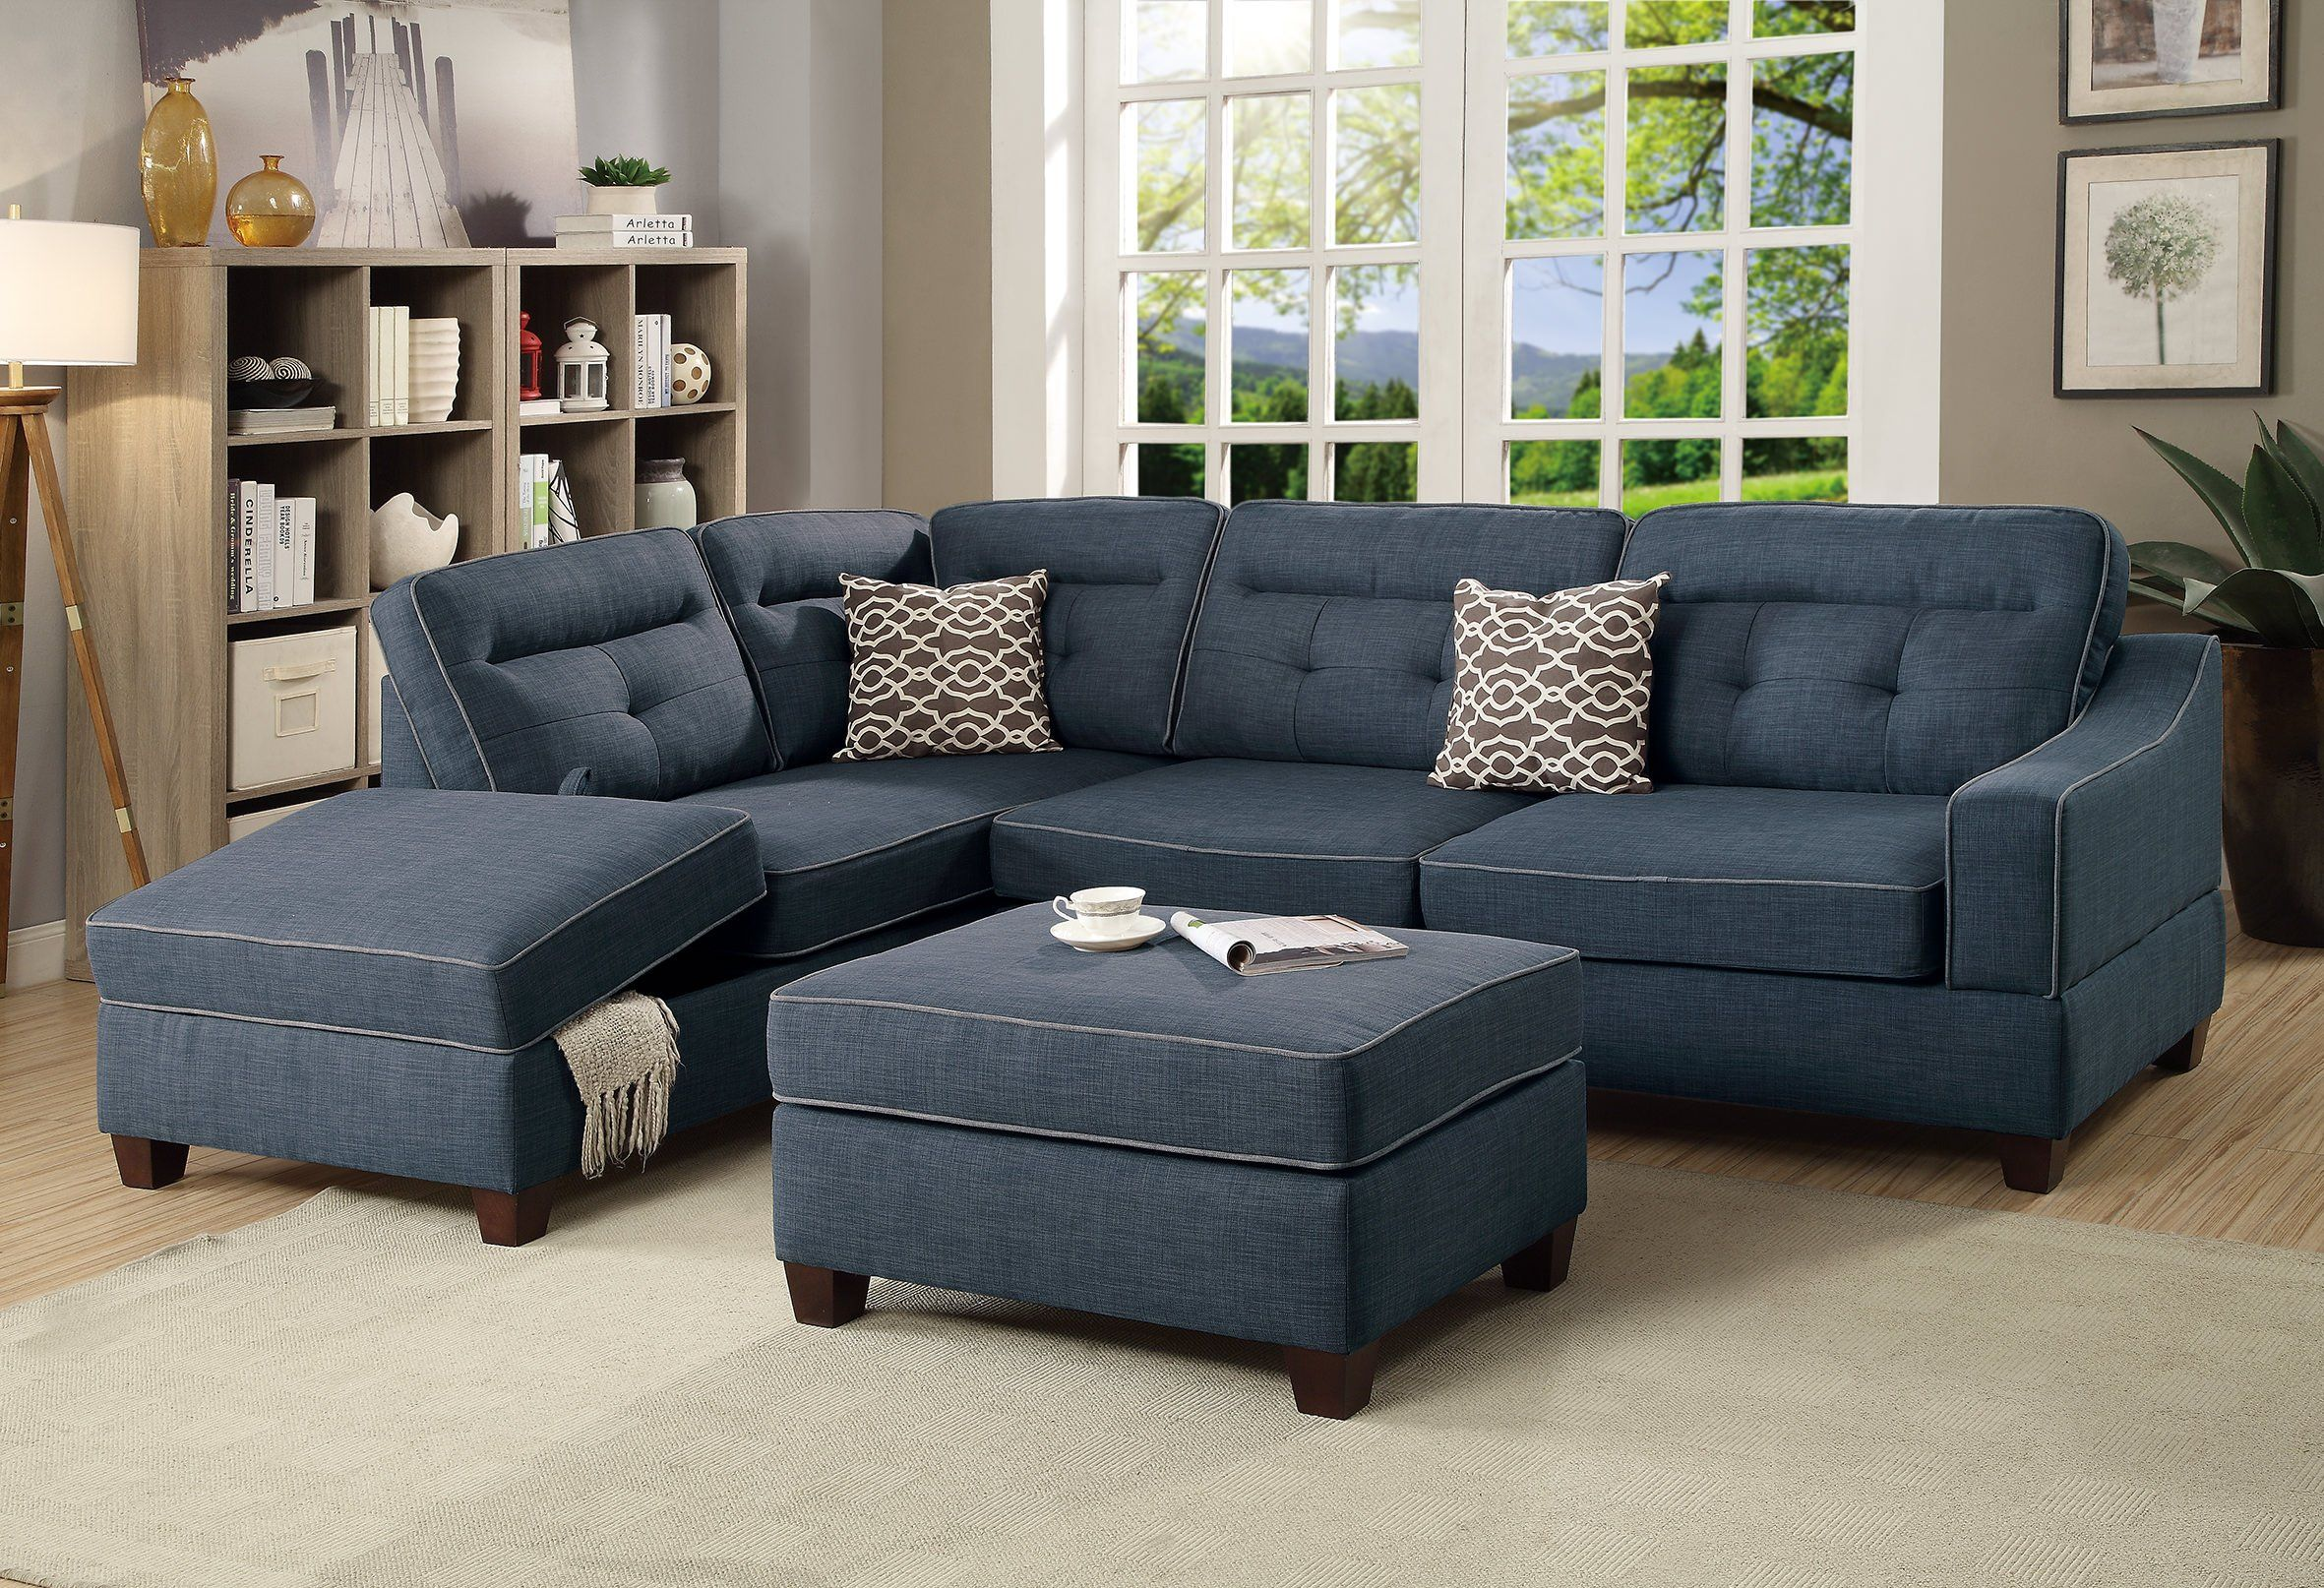 Pottery Barn Jake Sofa Set 2 Tripod Floor Lamp Pottery Barn Sofa Pottery Barn Living Room Sectional Sofa